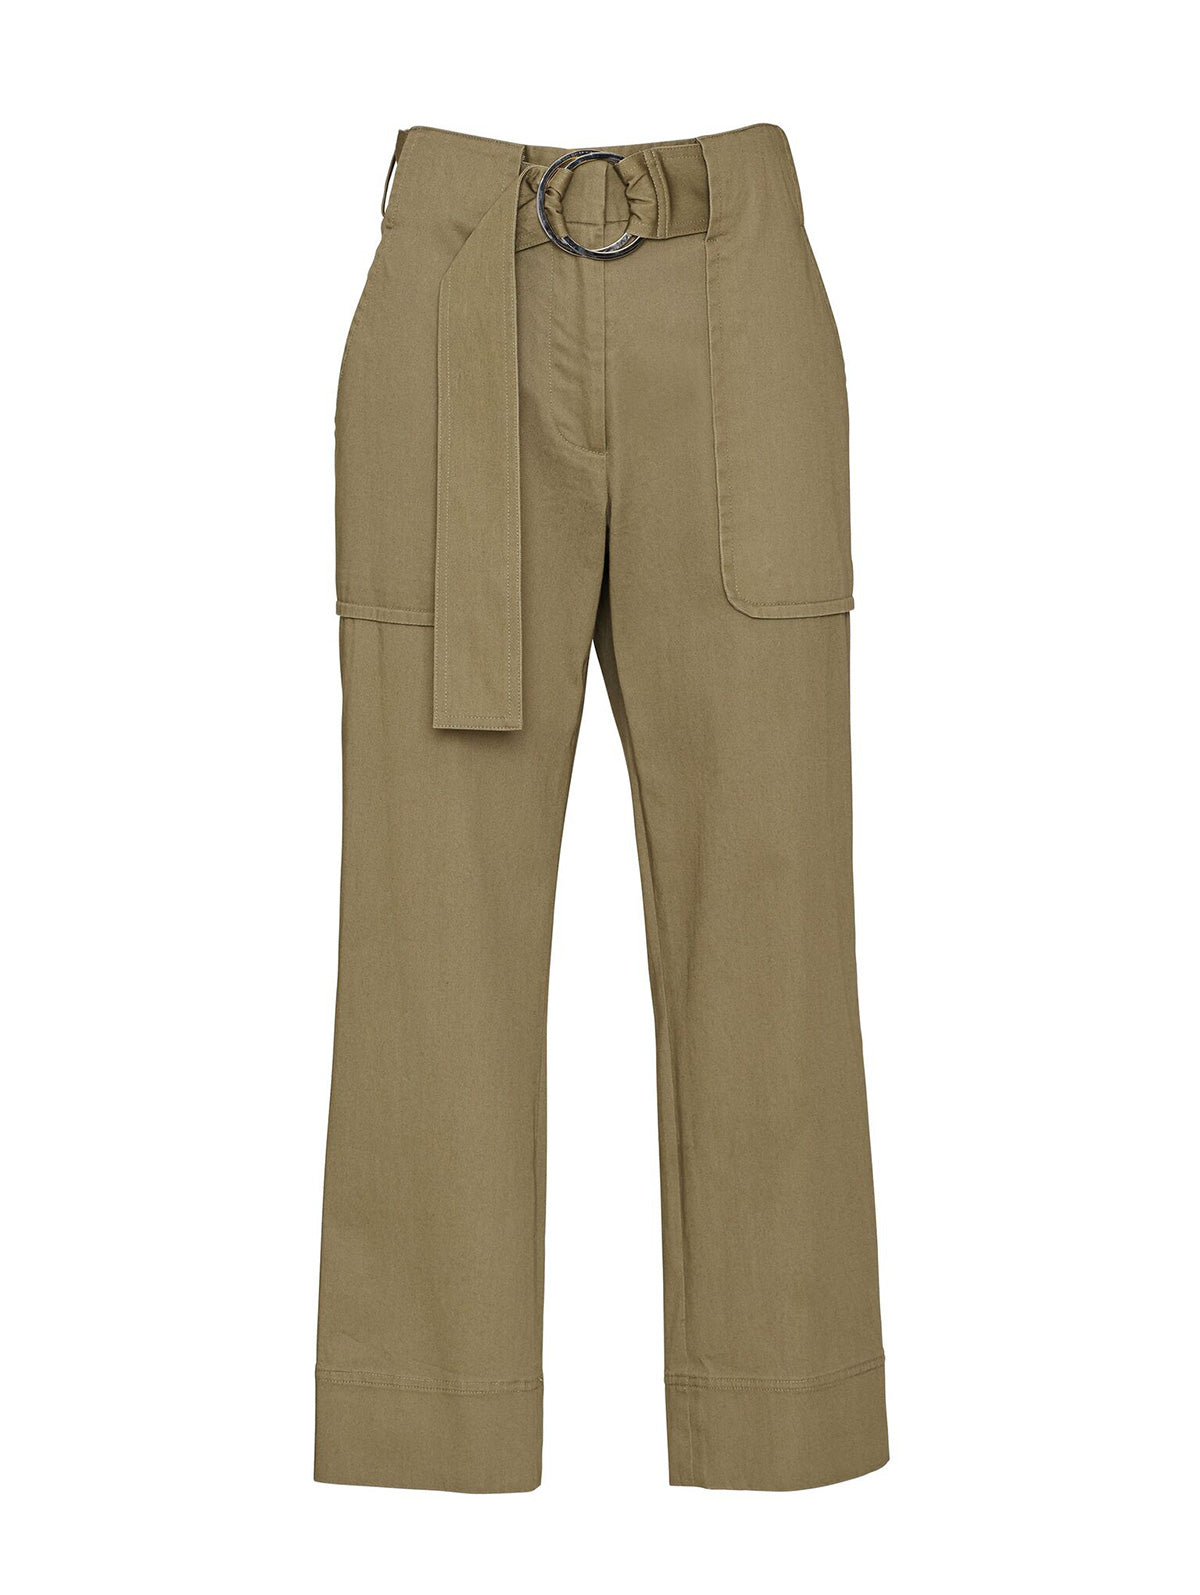 RIDING POCKET PANT, OLIVE